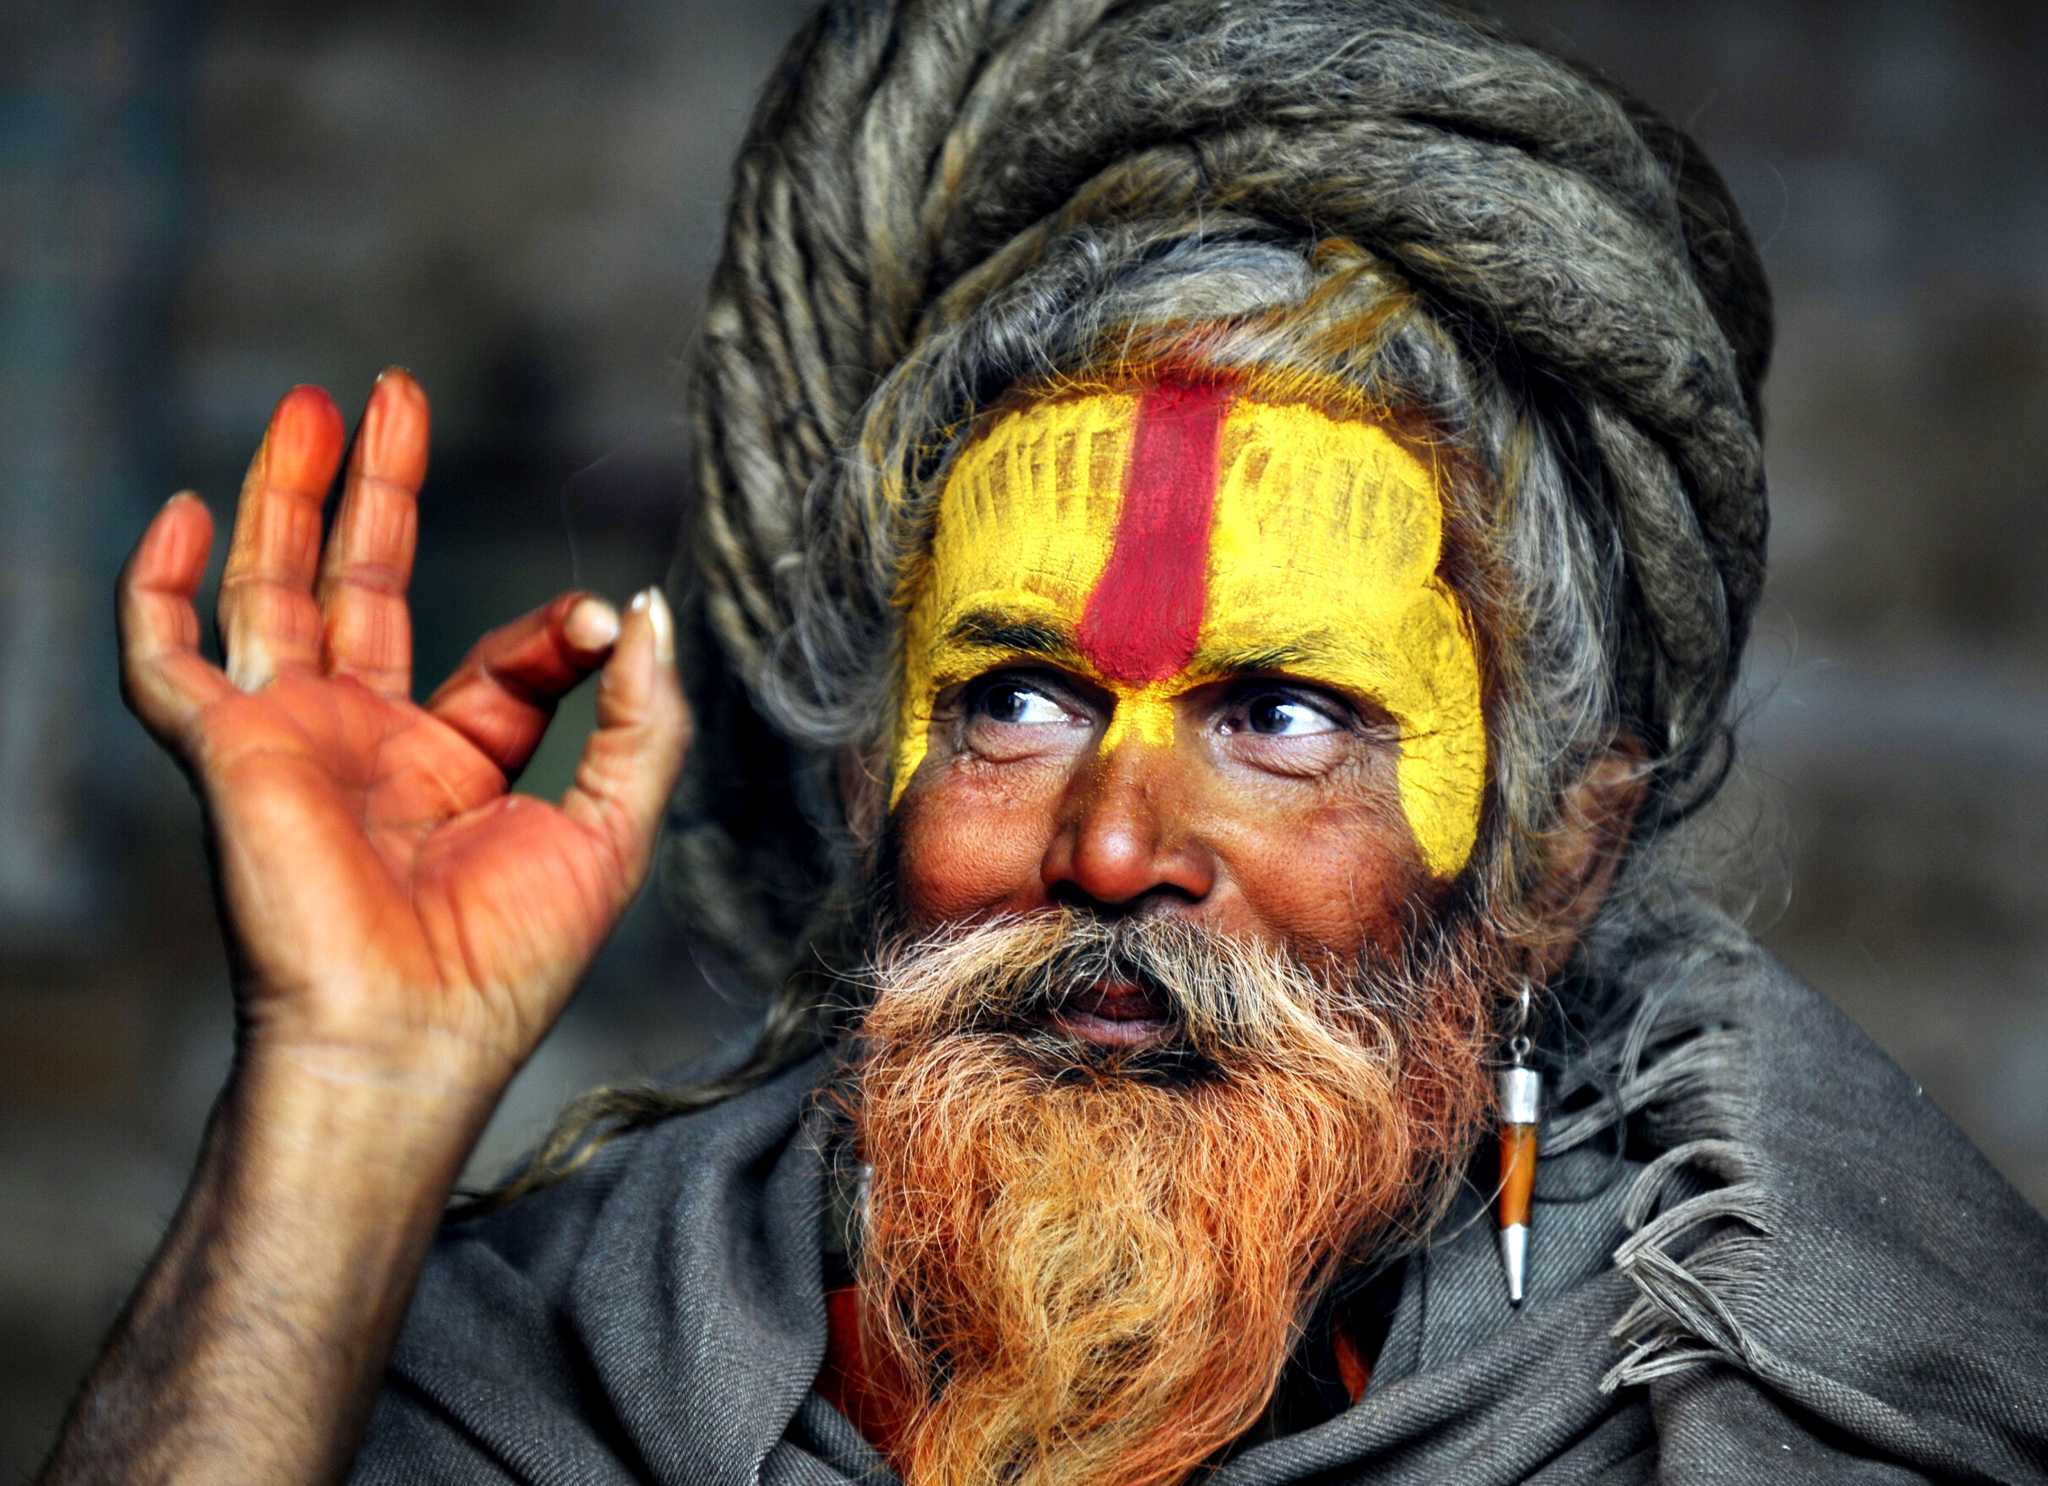 A Hindu Sadhu (holy man) poses for a photograph during the Maha Shivaratri festival at the Pashupatinath temple in Kathmandu on February 27, 2014. Hindus mark the Maha Shivratri festival by offering special prayers and fasting. Hundreds of sadhus have arrived in Pashupatinath to take part in the Maha Shivaratri festival. AFP PHOTO/Prakash MATHEMAPRAKASH MATHEMA/AFP/Getty Images